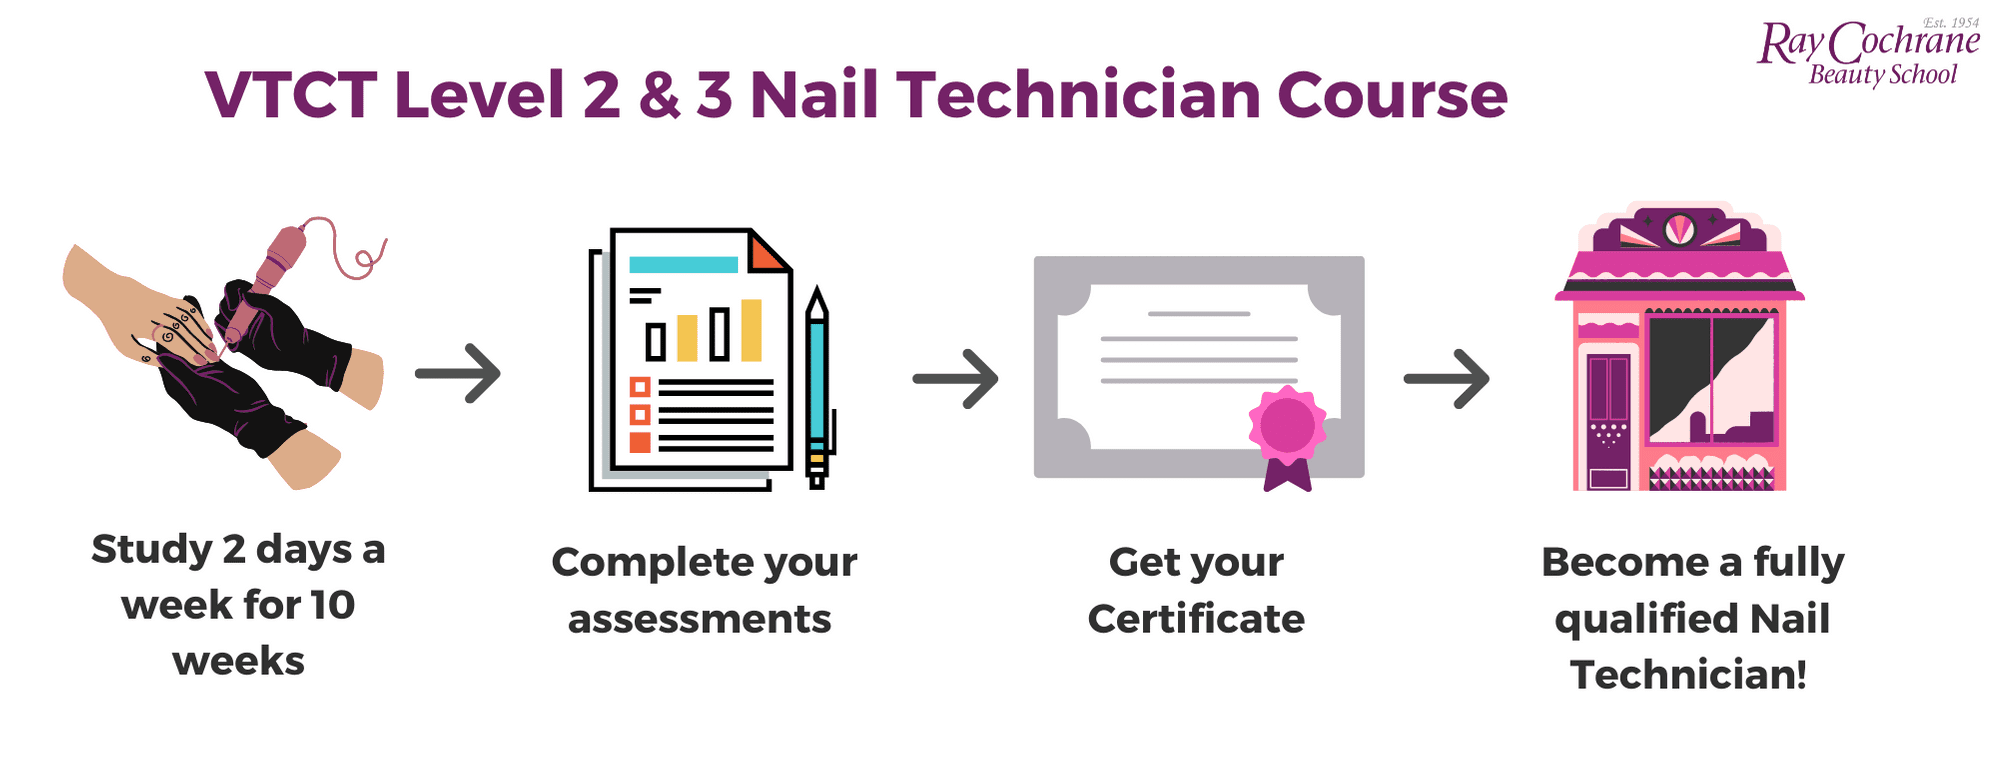 level 2& 3 nail technician qualification process